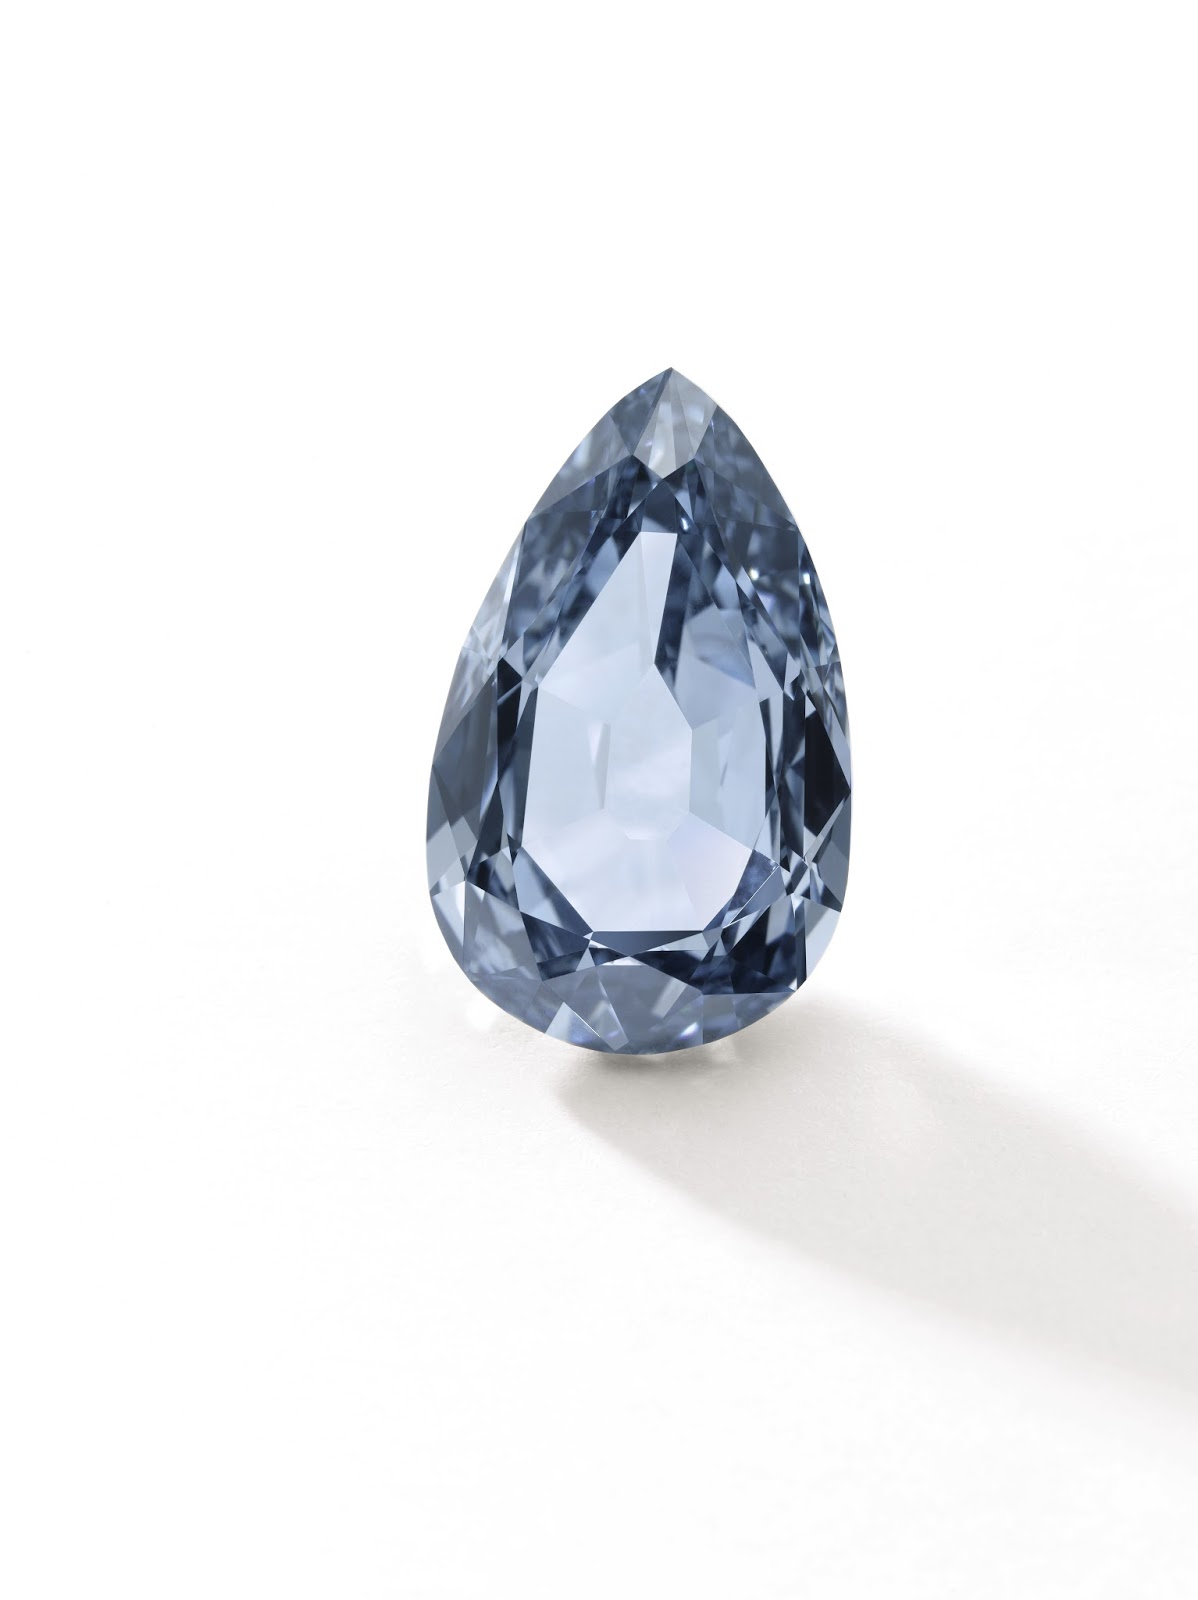 Lot 494 - Fancy Vivid Blue Diamond - 7.32 carats